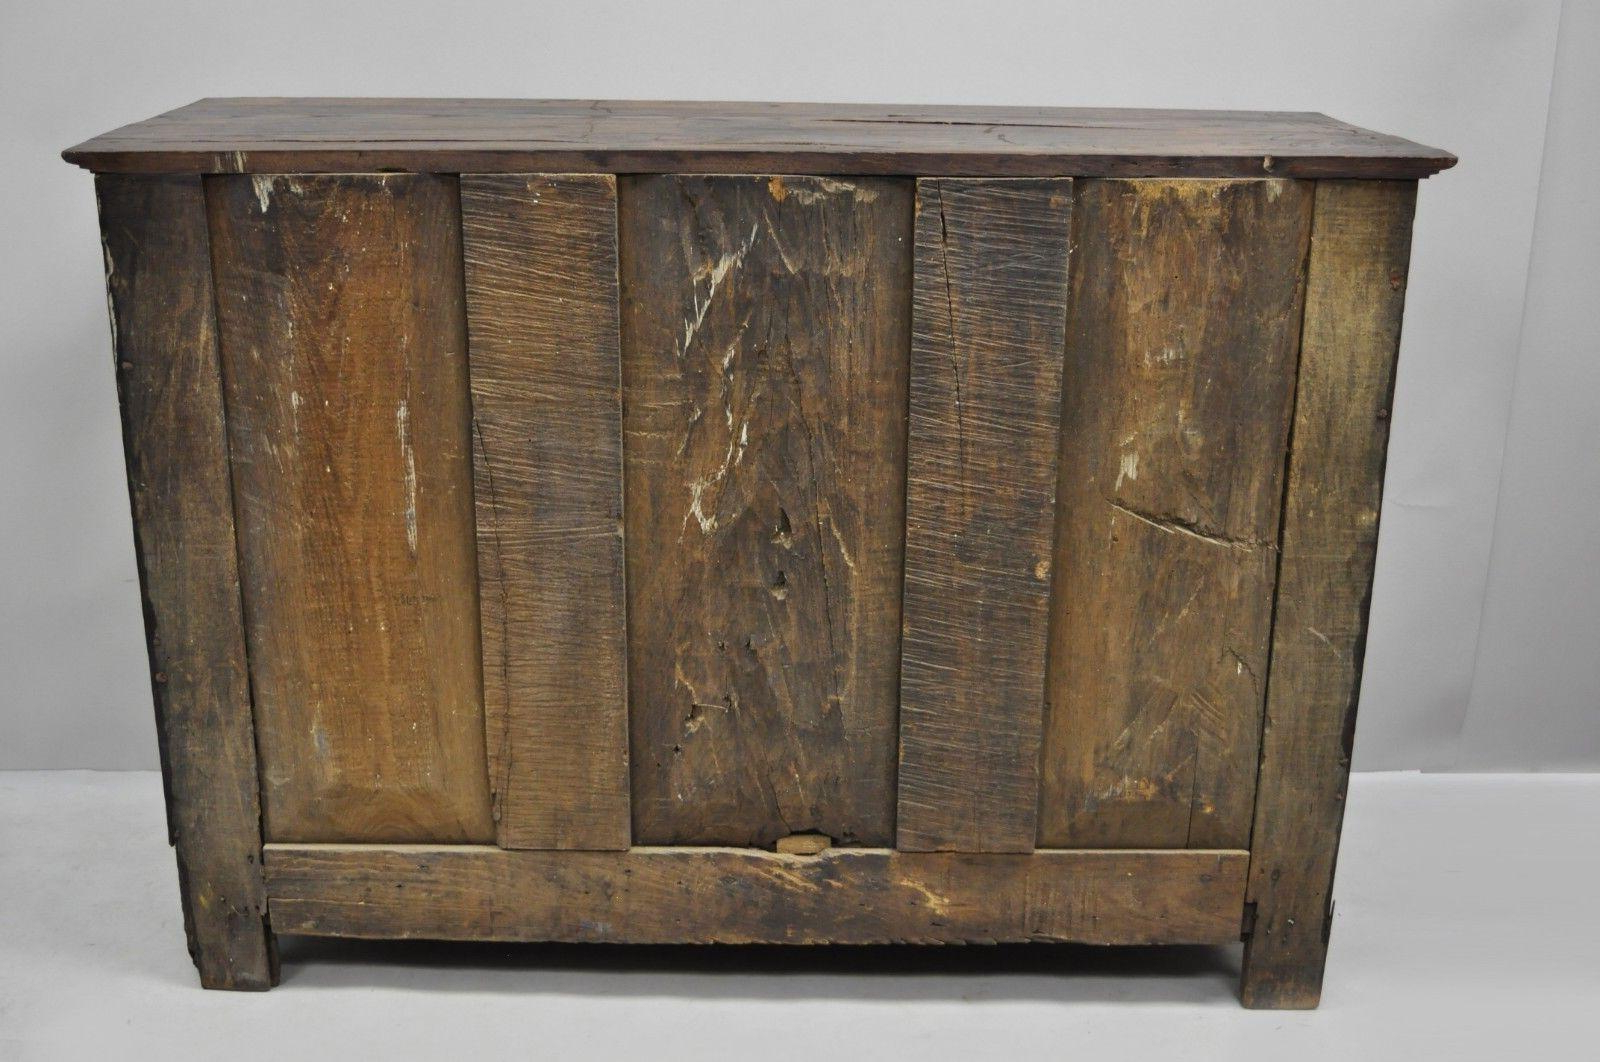 17Th Century Carved Walnut Italian Baroque Two Door Credenza Cabinet Buffet Intended For Vintage Walnut Sliding Door Buffets (View 1 of 20)